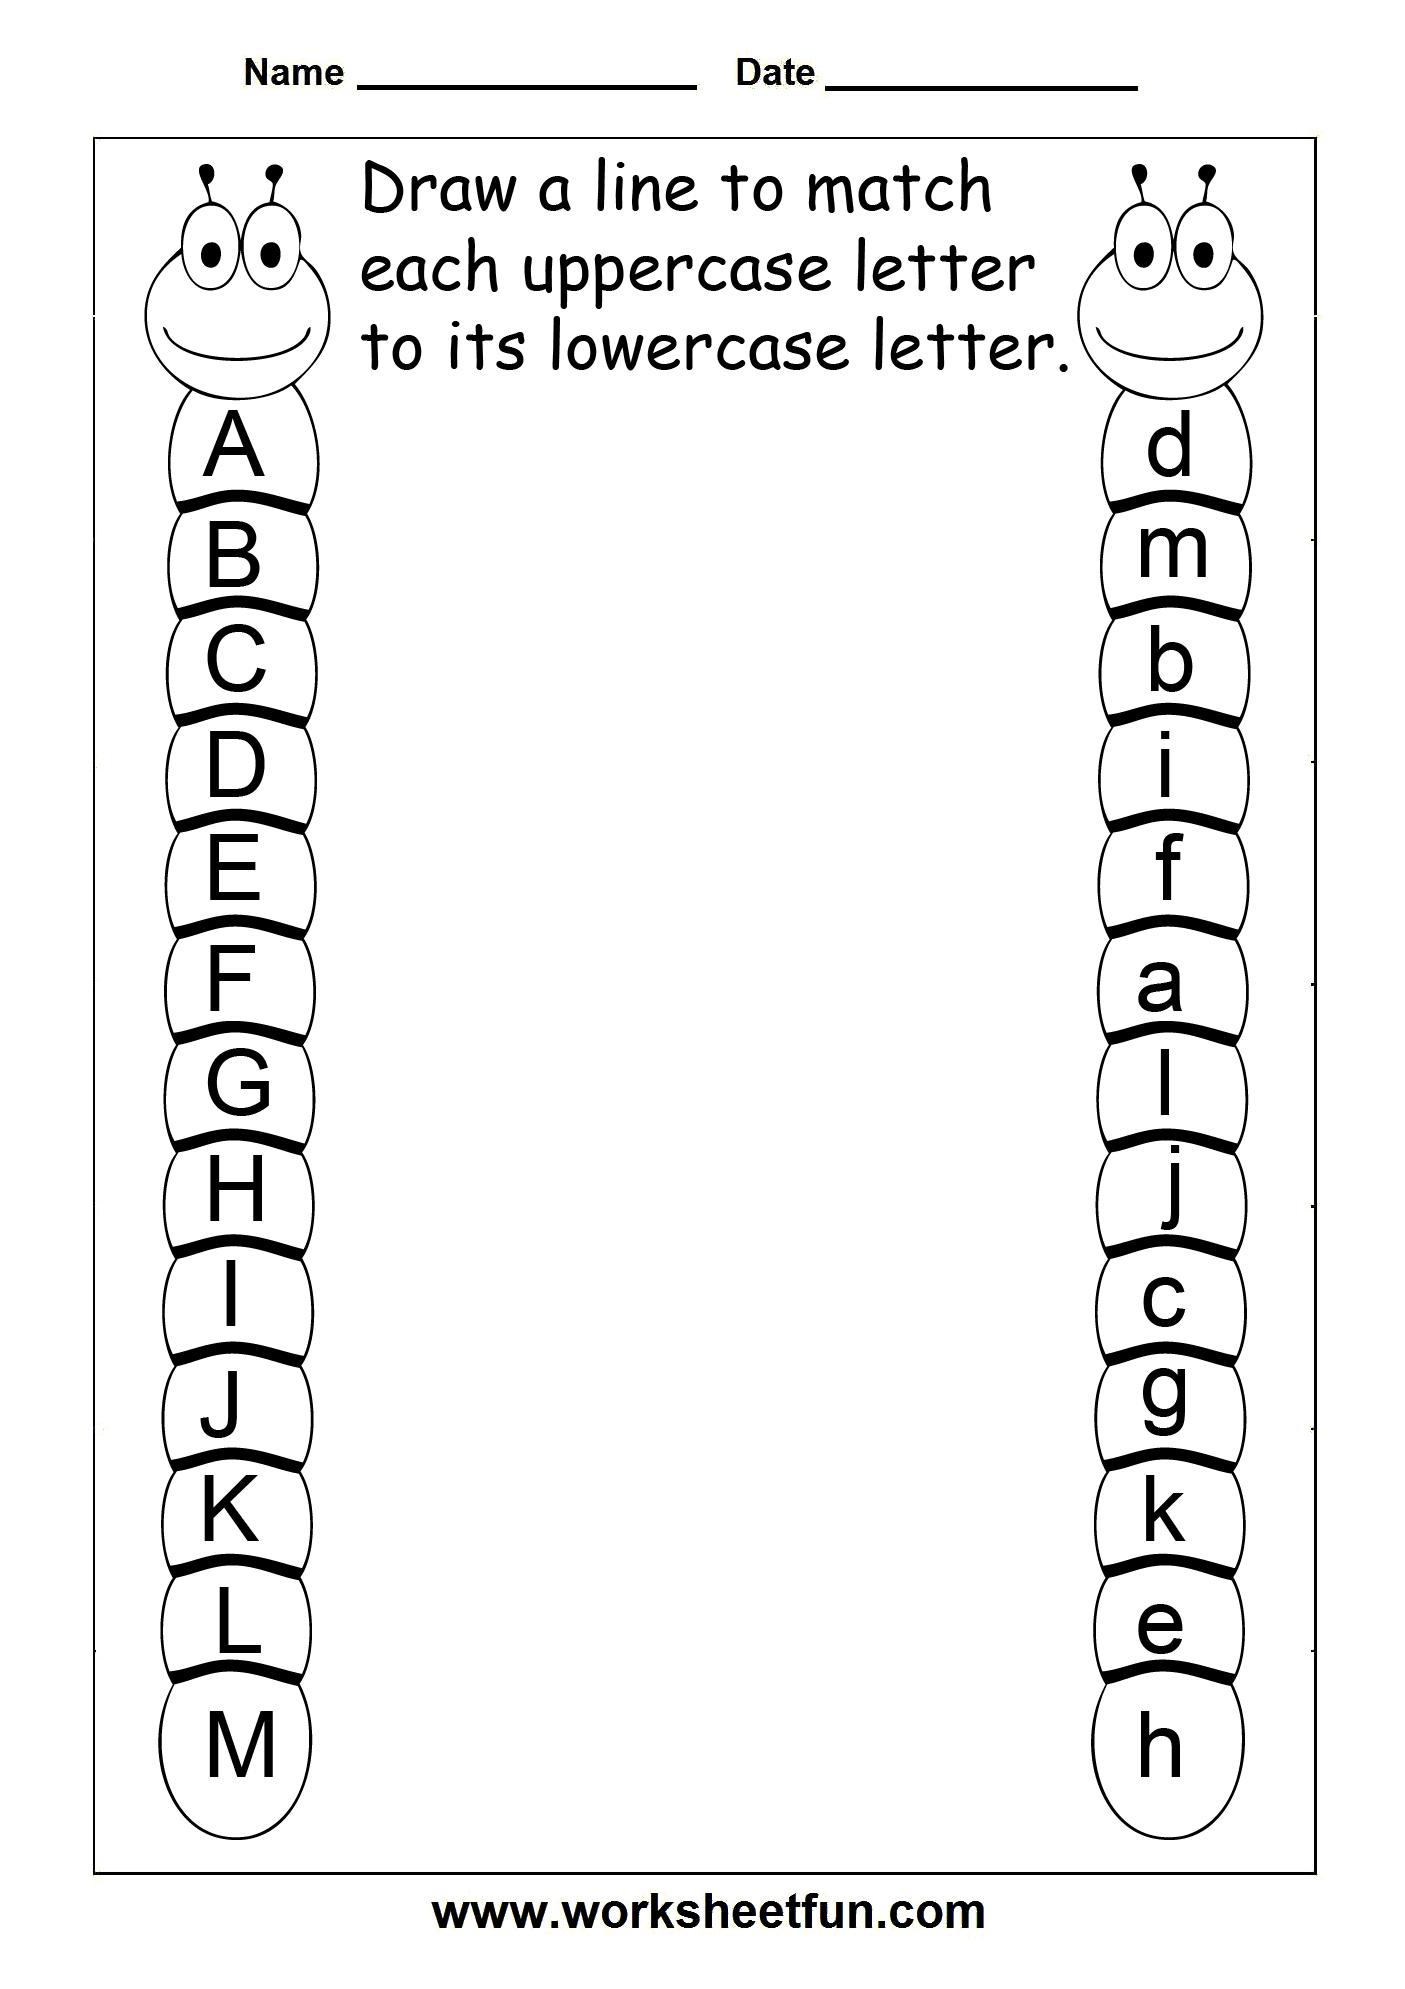 Weirdmailus  Marvelous  Images About Work Worksheet On Pinterest  Hidden Pictures  With Exciting  Images About Work Worksheet On Pinterest  Hidden Pictures Color By Numbers And Puzzles With Breathtaking Estimating And Rounding Worksheets Also Simple Circuits Worksheets In Addition Place Value Free Printable Worksheets And Treble Staff Worksheet As Well As Conjunction Worksheets For High School Additionally Free Kumon Printable Worksheets From Pinterestcom With Weirdmailus  Exciting  Images About Work Worksheet On Pinterest  Hidden Pictures  With Breathtaking  Images About Work Worksheet On Pinterest  Hidden Pictures Color By Numbers And Puzzles And Marvelous Estimating And Rounding Worksheets Also Simple Circuits Worksheets In Addition Place Value Free Printable Worksheets From Pinterestcom